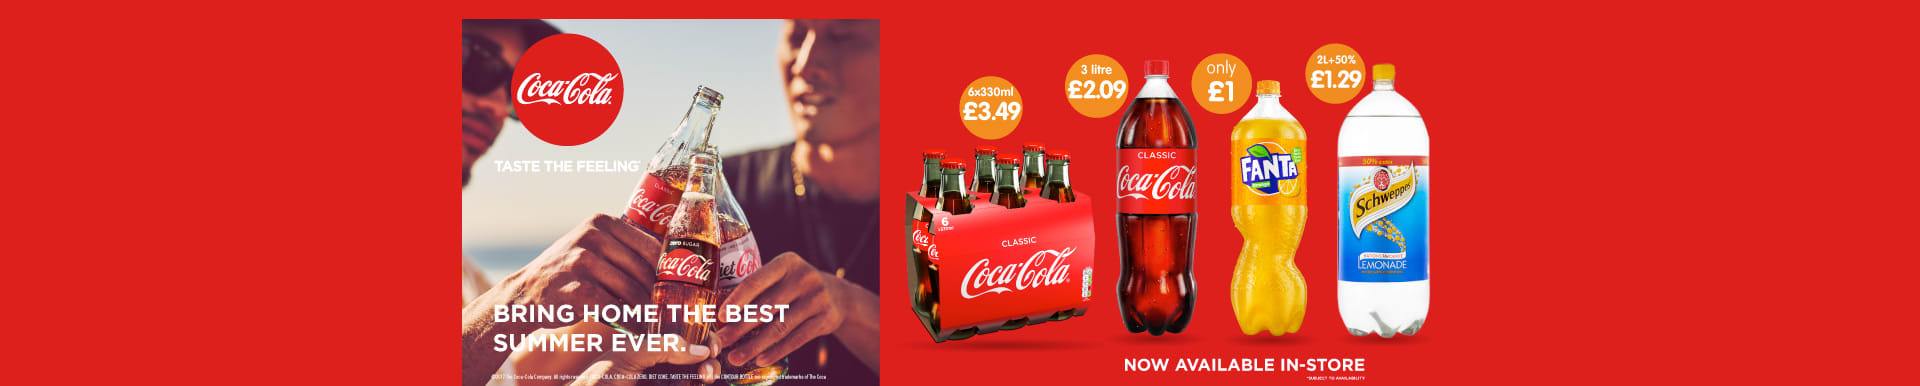 Save on Coca Cola at B&M.